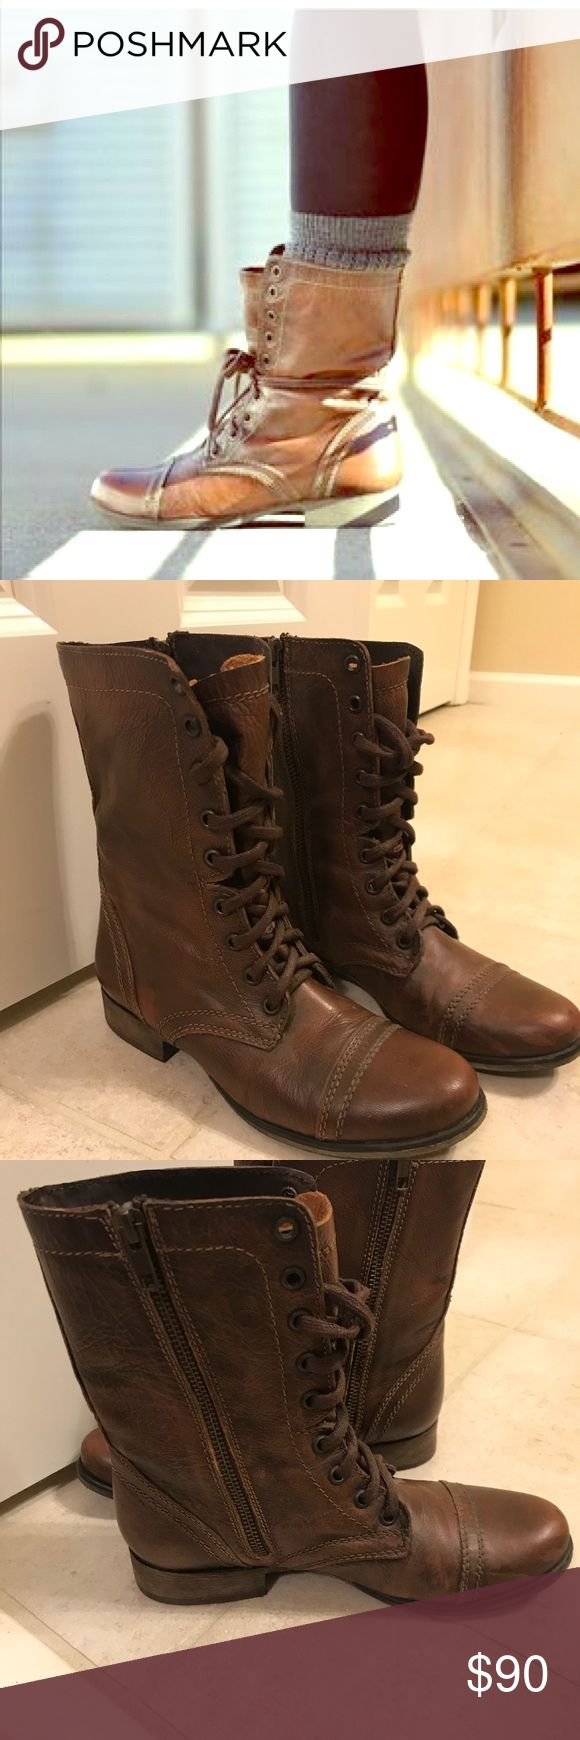 Steve Madden Troopa Conway Boots Size 7 lace up combat boots. excellent condition! I bought these and just never wore them. They may have been worn for a few hours but they don't look it!! They look brand new. See pics. Very rich brown color. Steve Madden Shoes Combat & Moto Boots